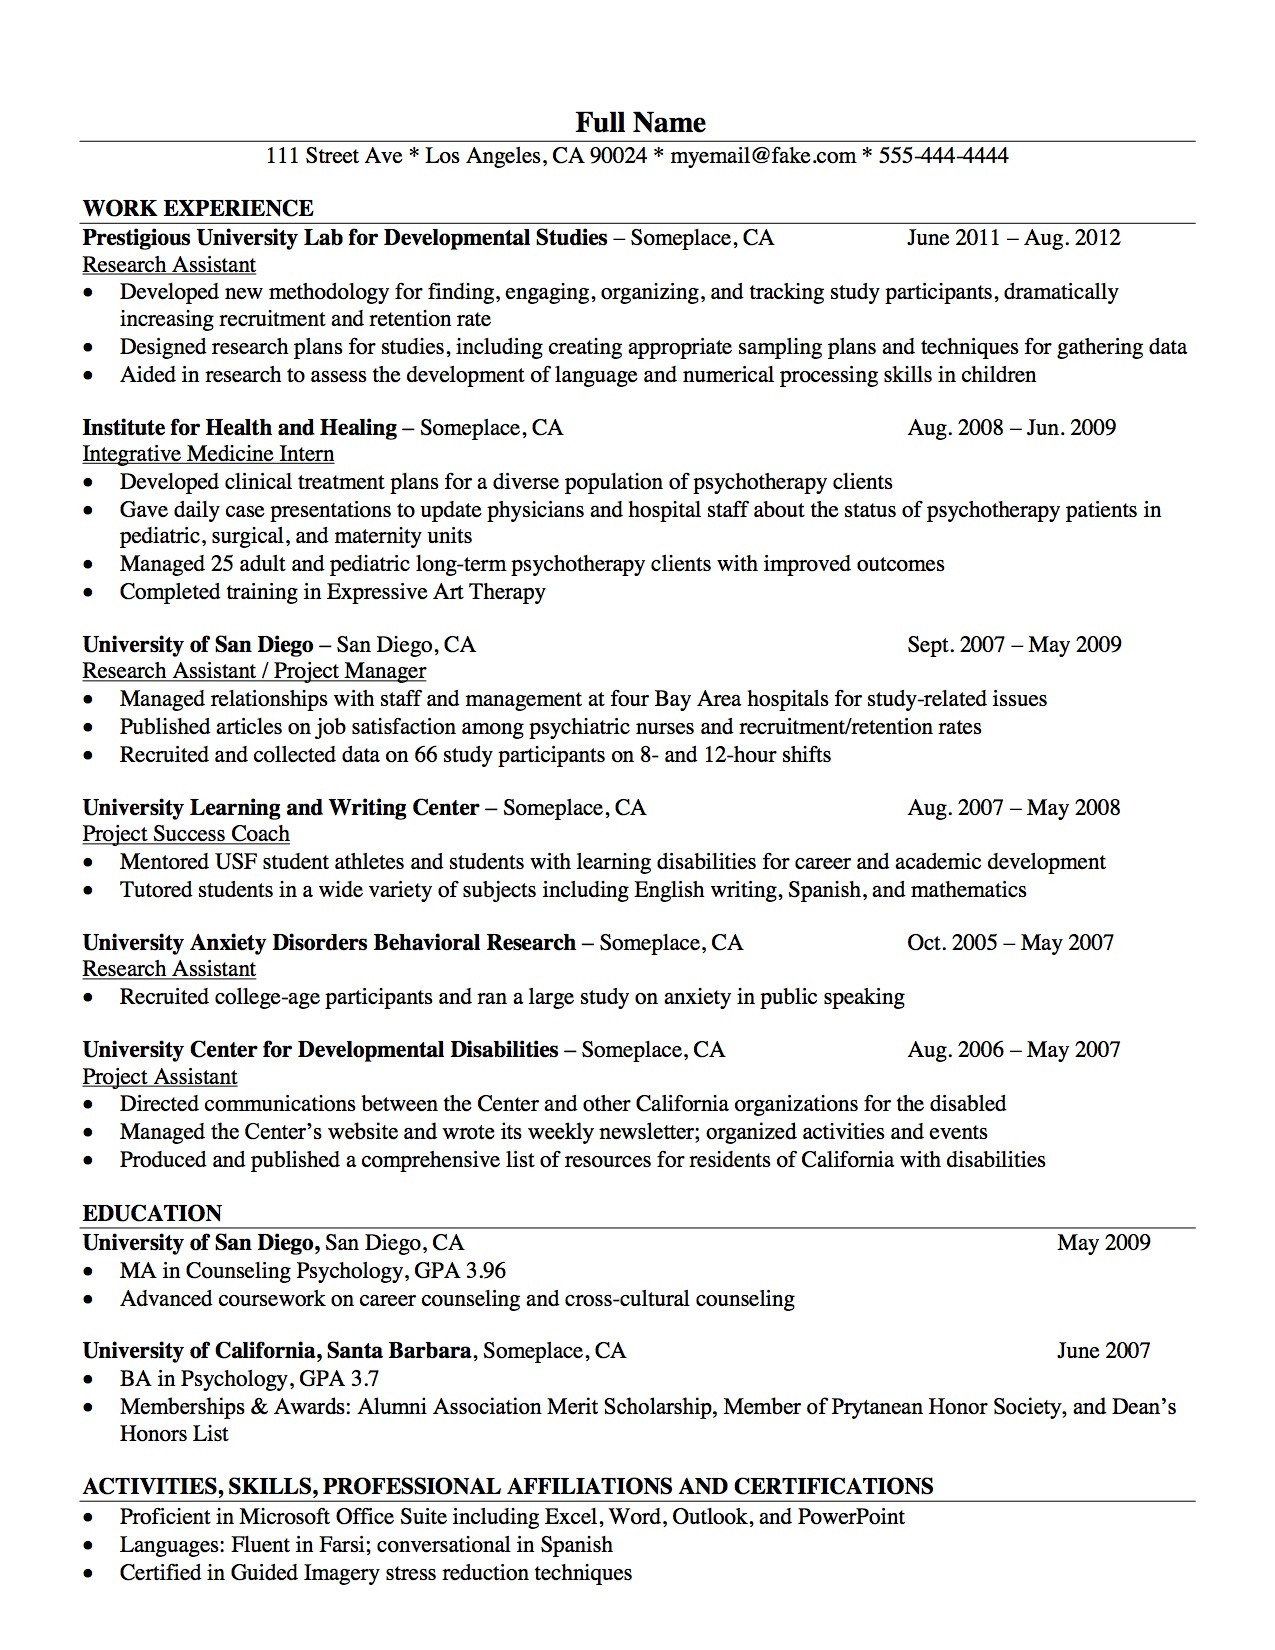 Curriculum Vitae Psychology Resume Example For Psychologist